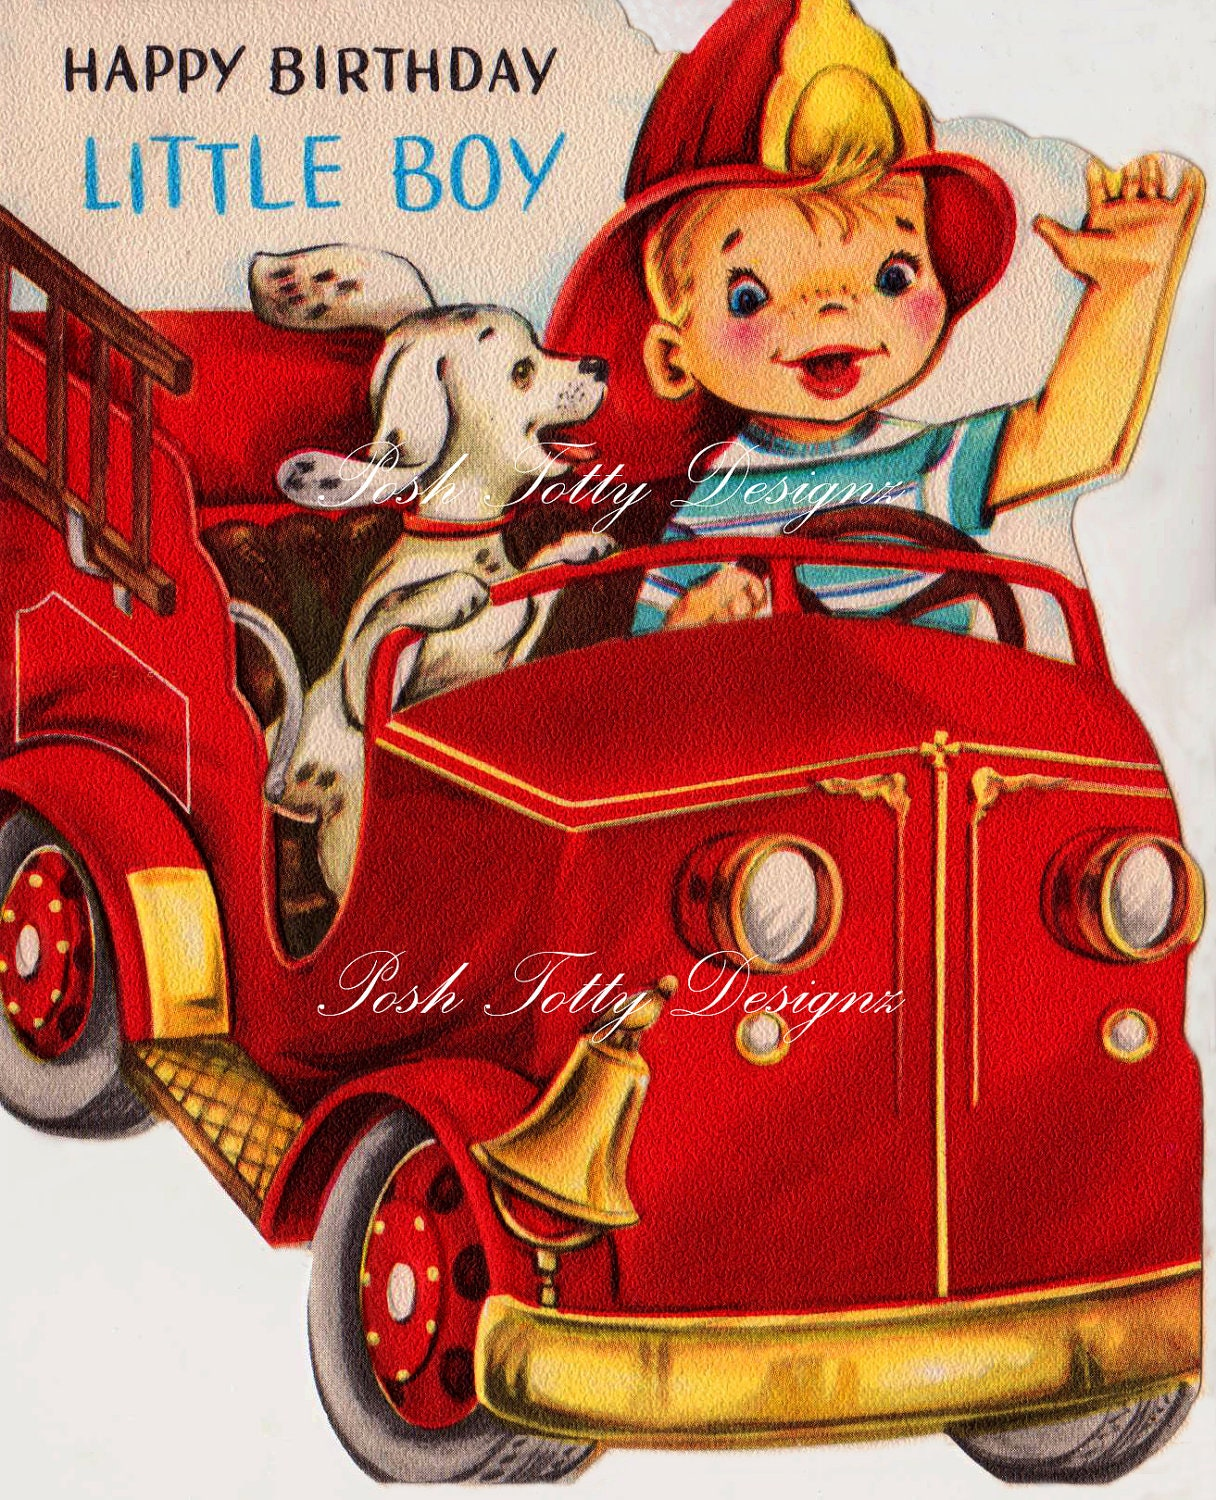 1950s Happy Birthday Little Boy Fire Chief Vintage Greetings